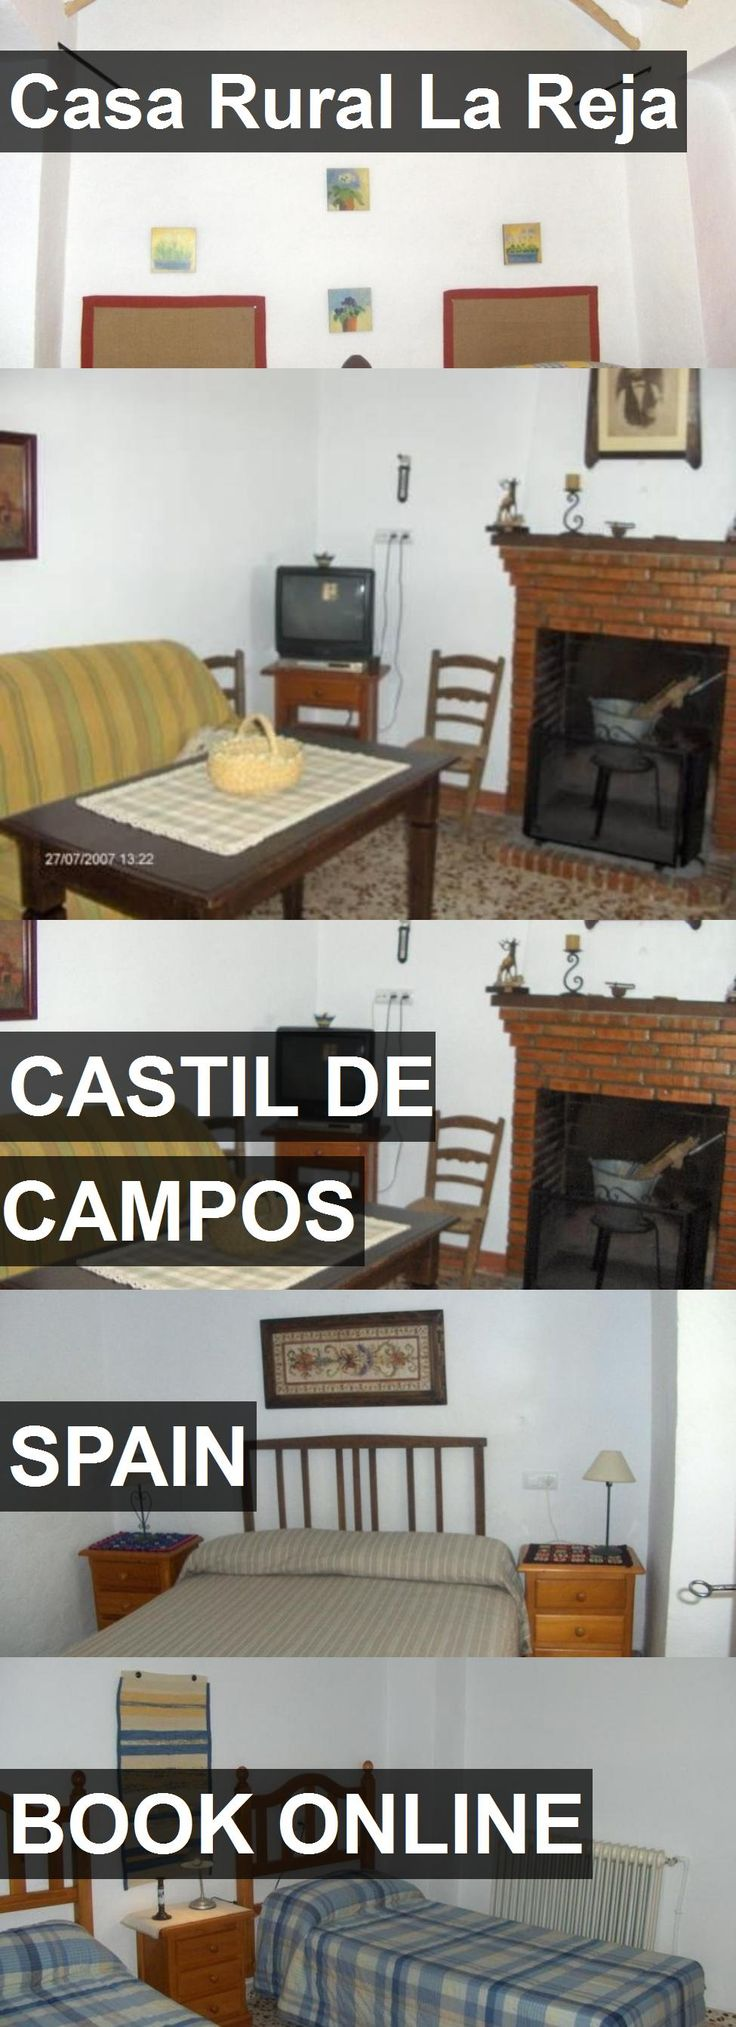 Hotel Casa Rural La Reja in Castil de Campos, Spain. For more information, photos, reviews and best prices please follow the link. #Spain #CastildeCampos #travel #vacation #hotel